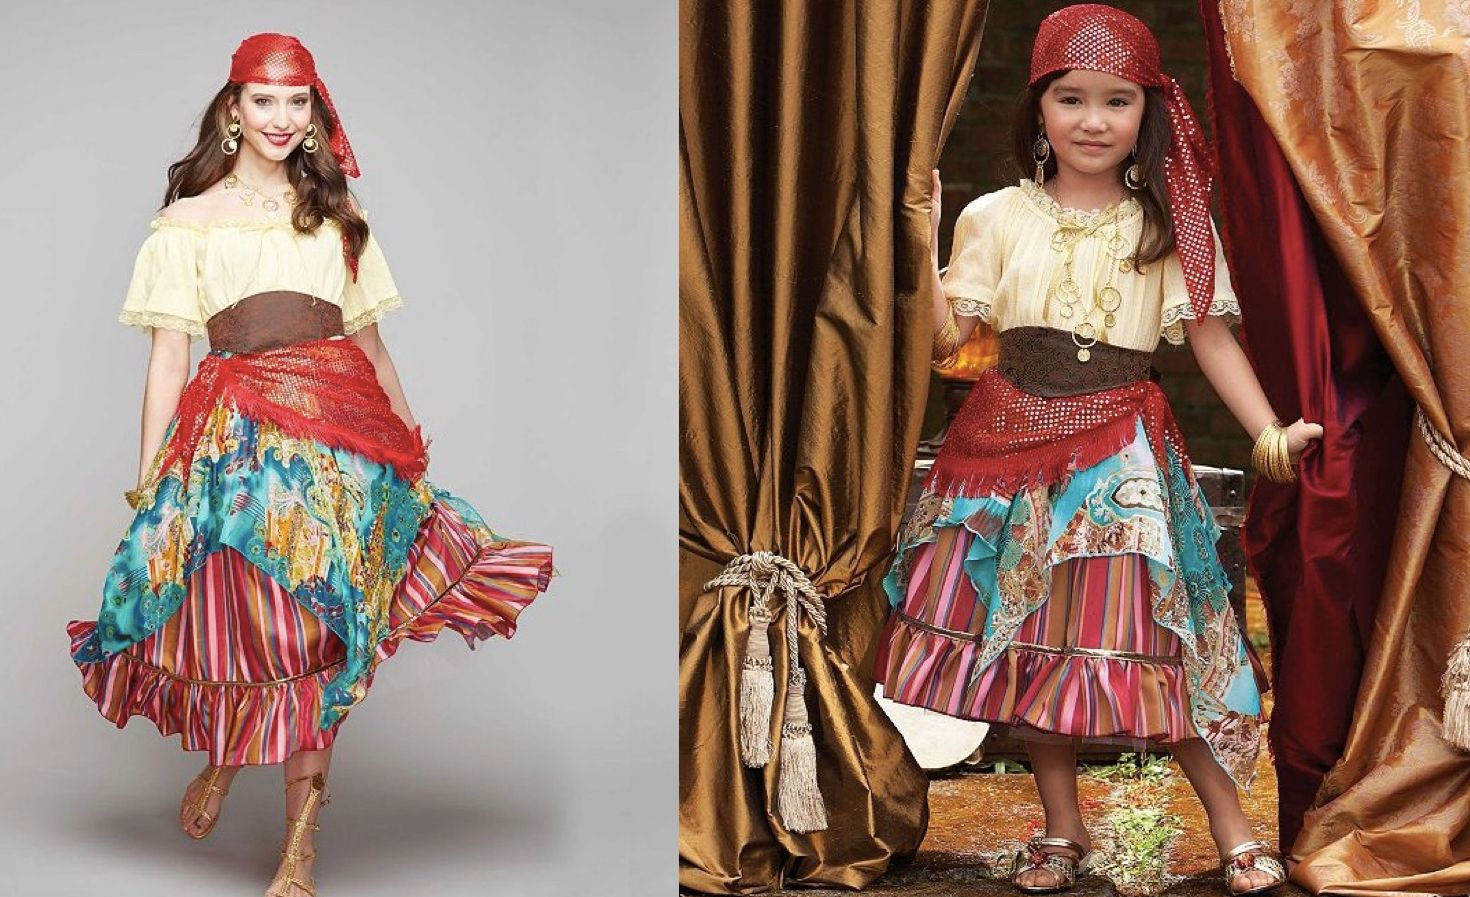 Mother Daughter Matching Fortune Teller Costumes | Moms